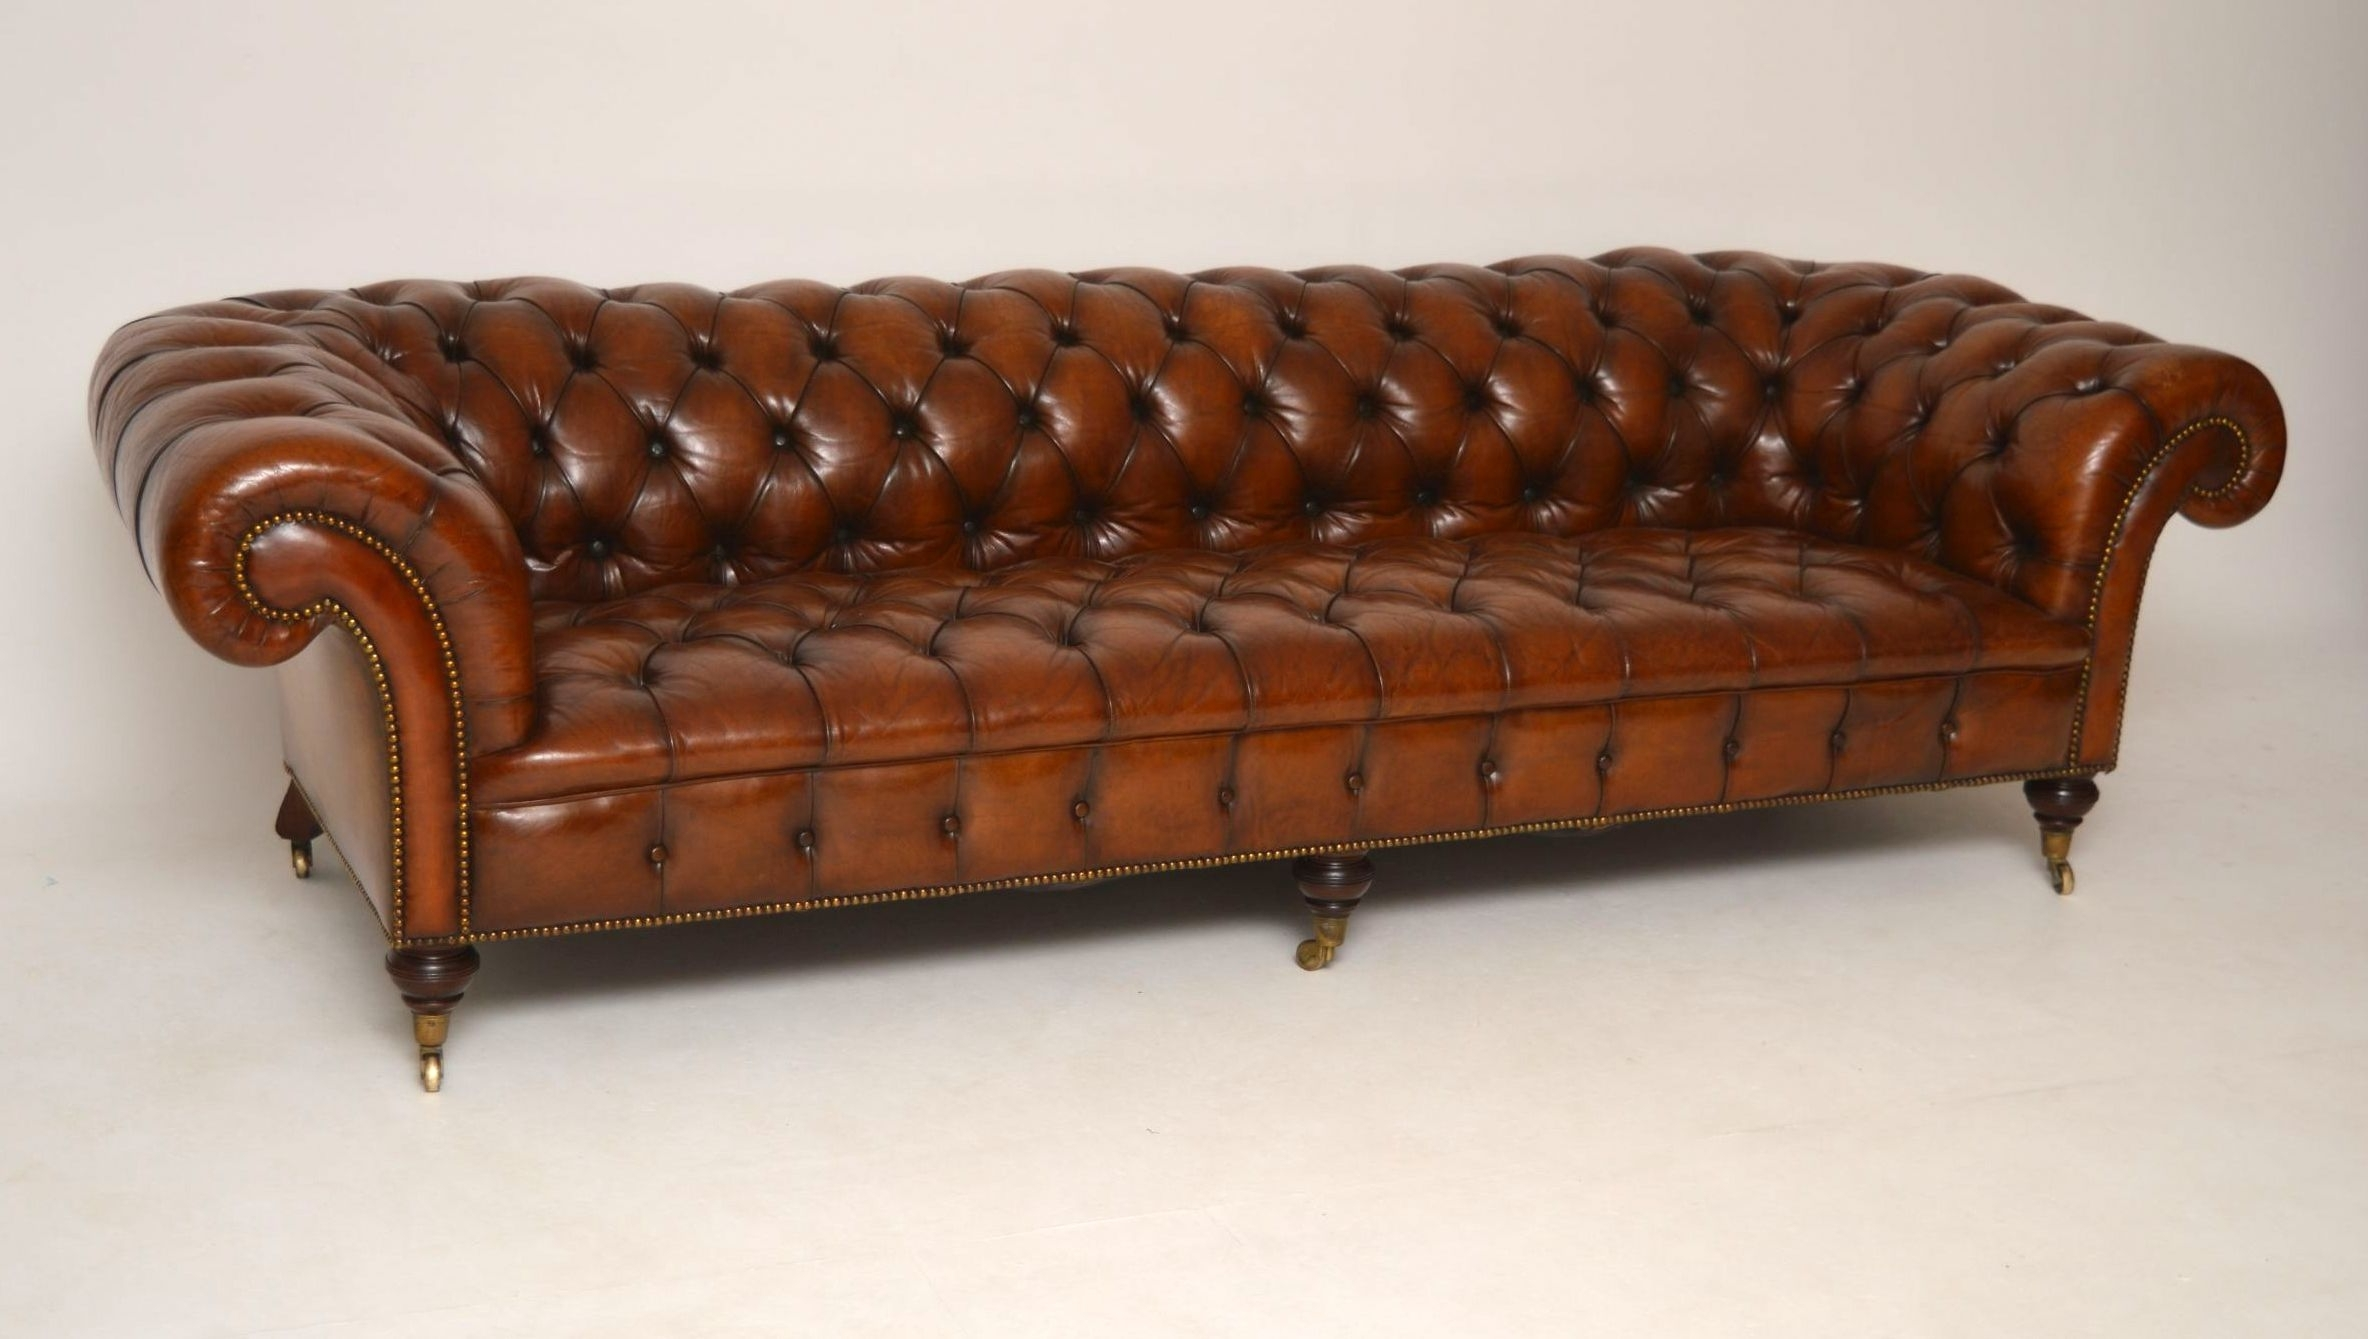 Well Liked Sofa : Victorian Sofa Antique Table Styles Value Settee Pertaining To Victorian Leather Sofas (View 15 of 15)